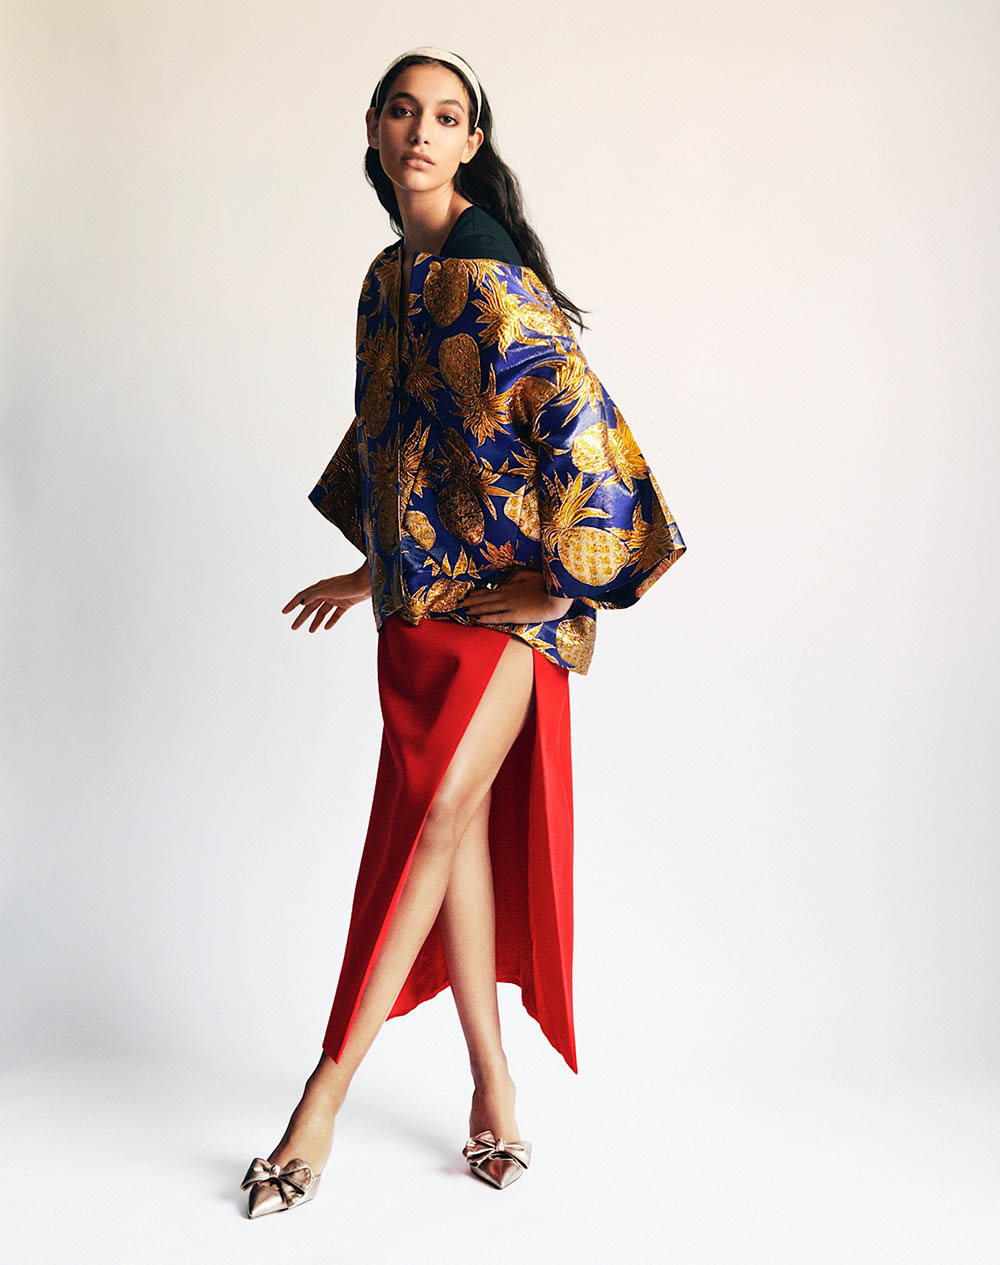 Nour Rizk by Paul Scala for Vogue India September 2020Nour Rizk by Paul Scala for Vogue India September 2020